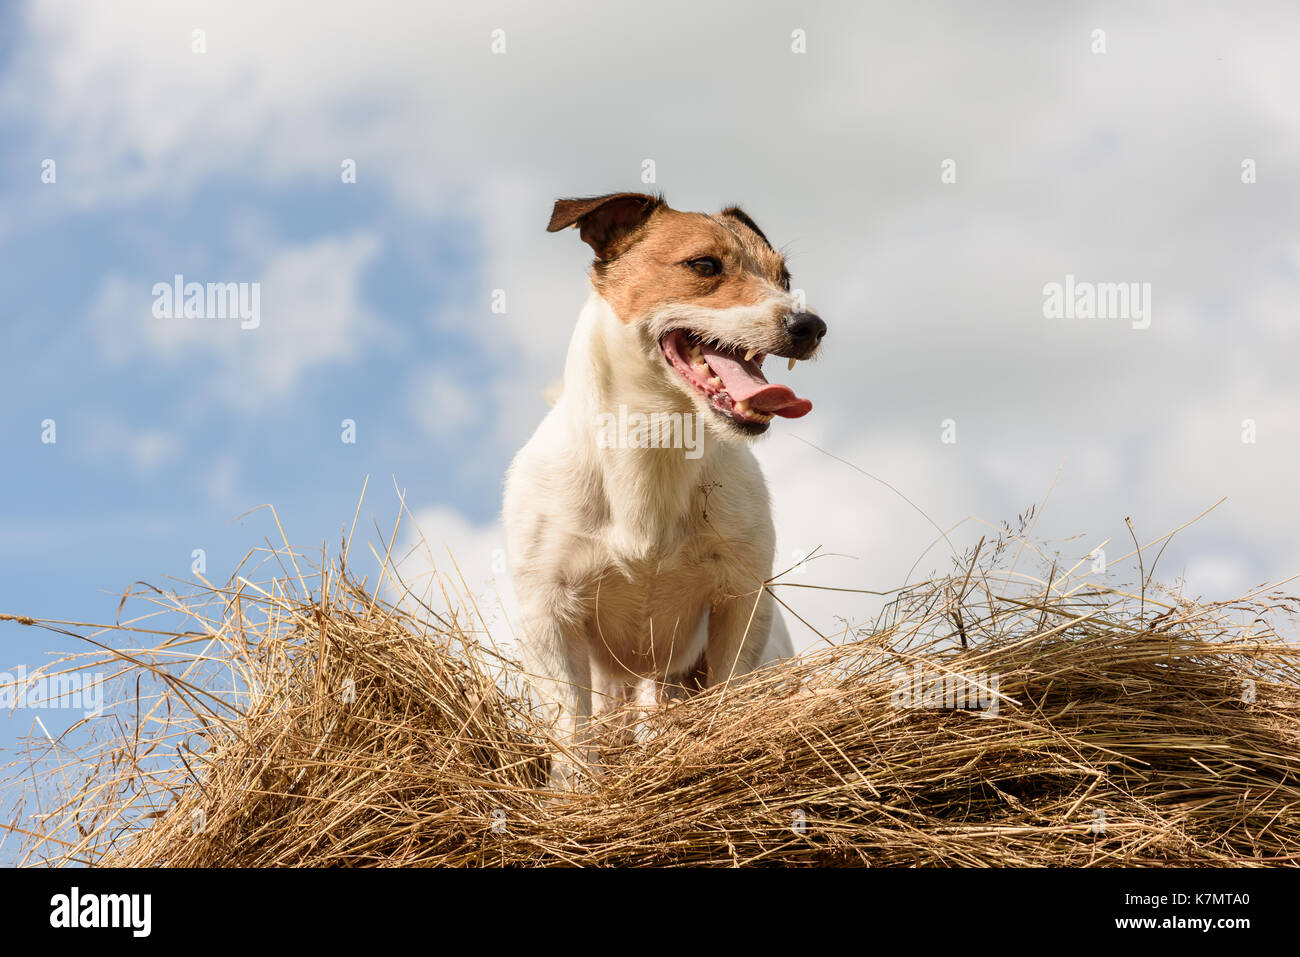 Summer rustic scene with dog on hay bale at hot day Stock Photo